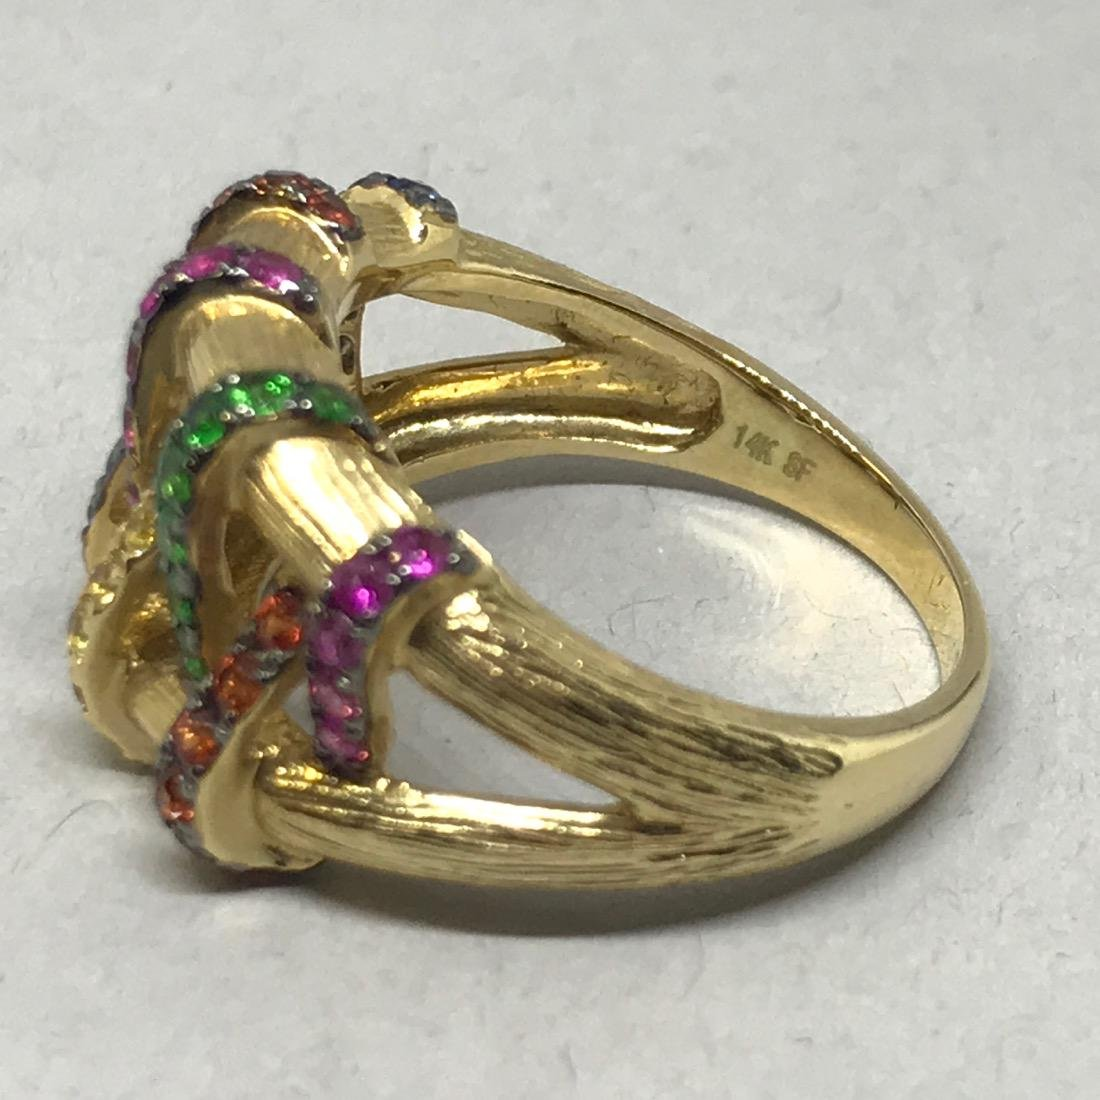 14K Gold Ring with Assorted Gemstones - 3